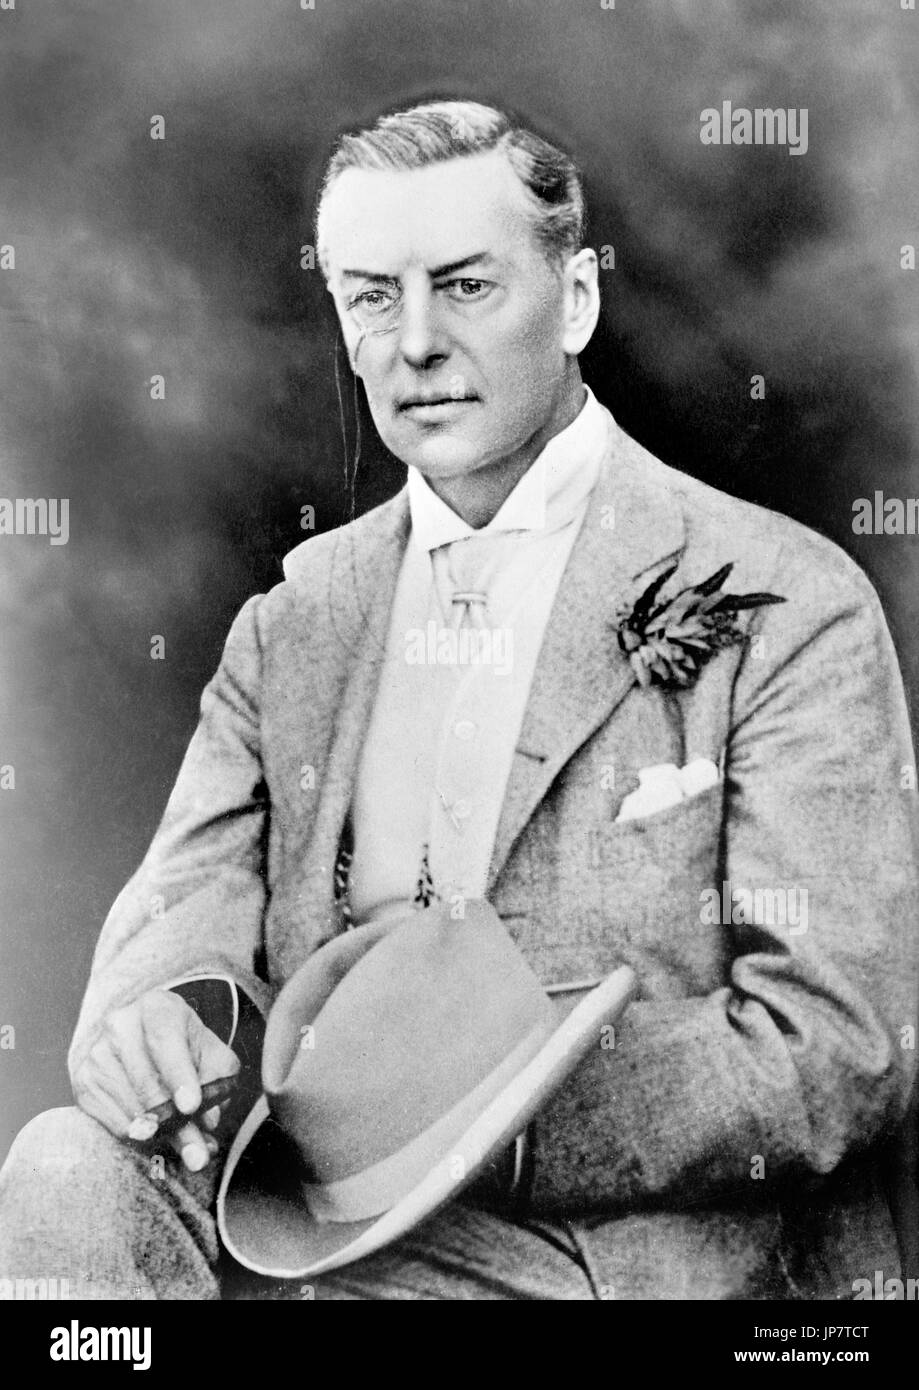 Joseph Chamberlain (1836-1914), Photograph of the British politician in 1909. - Stock Image